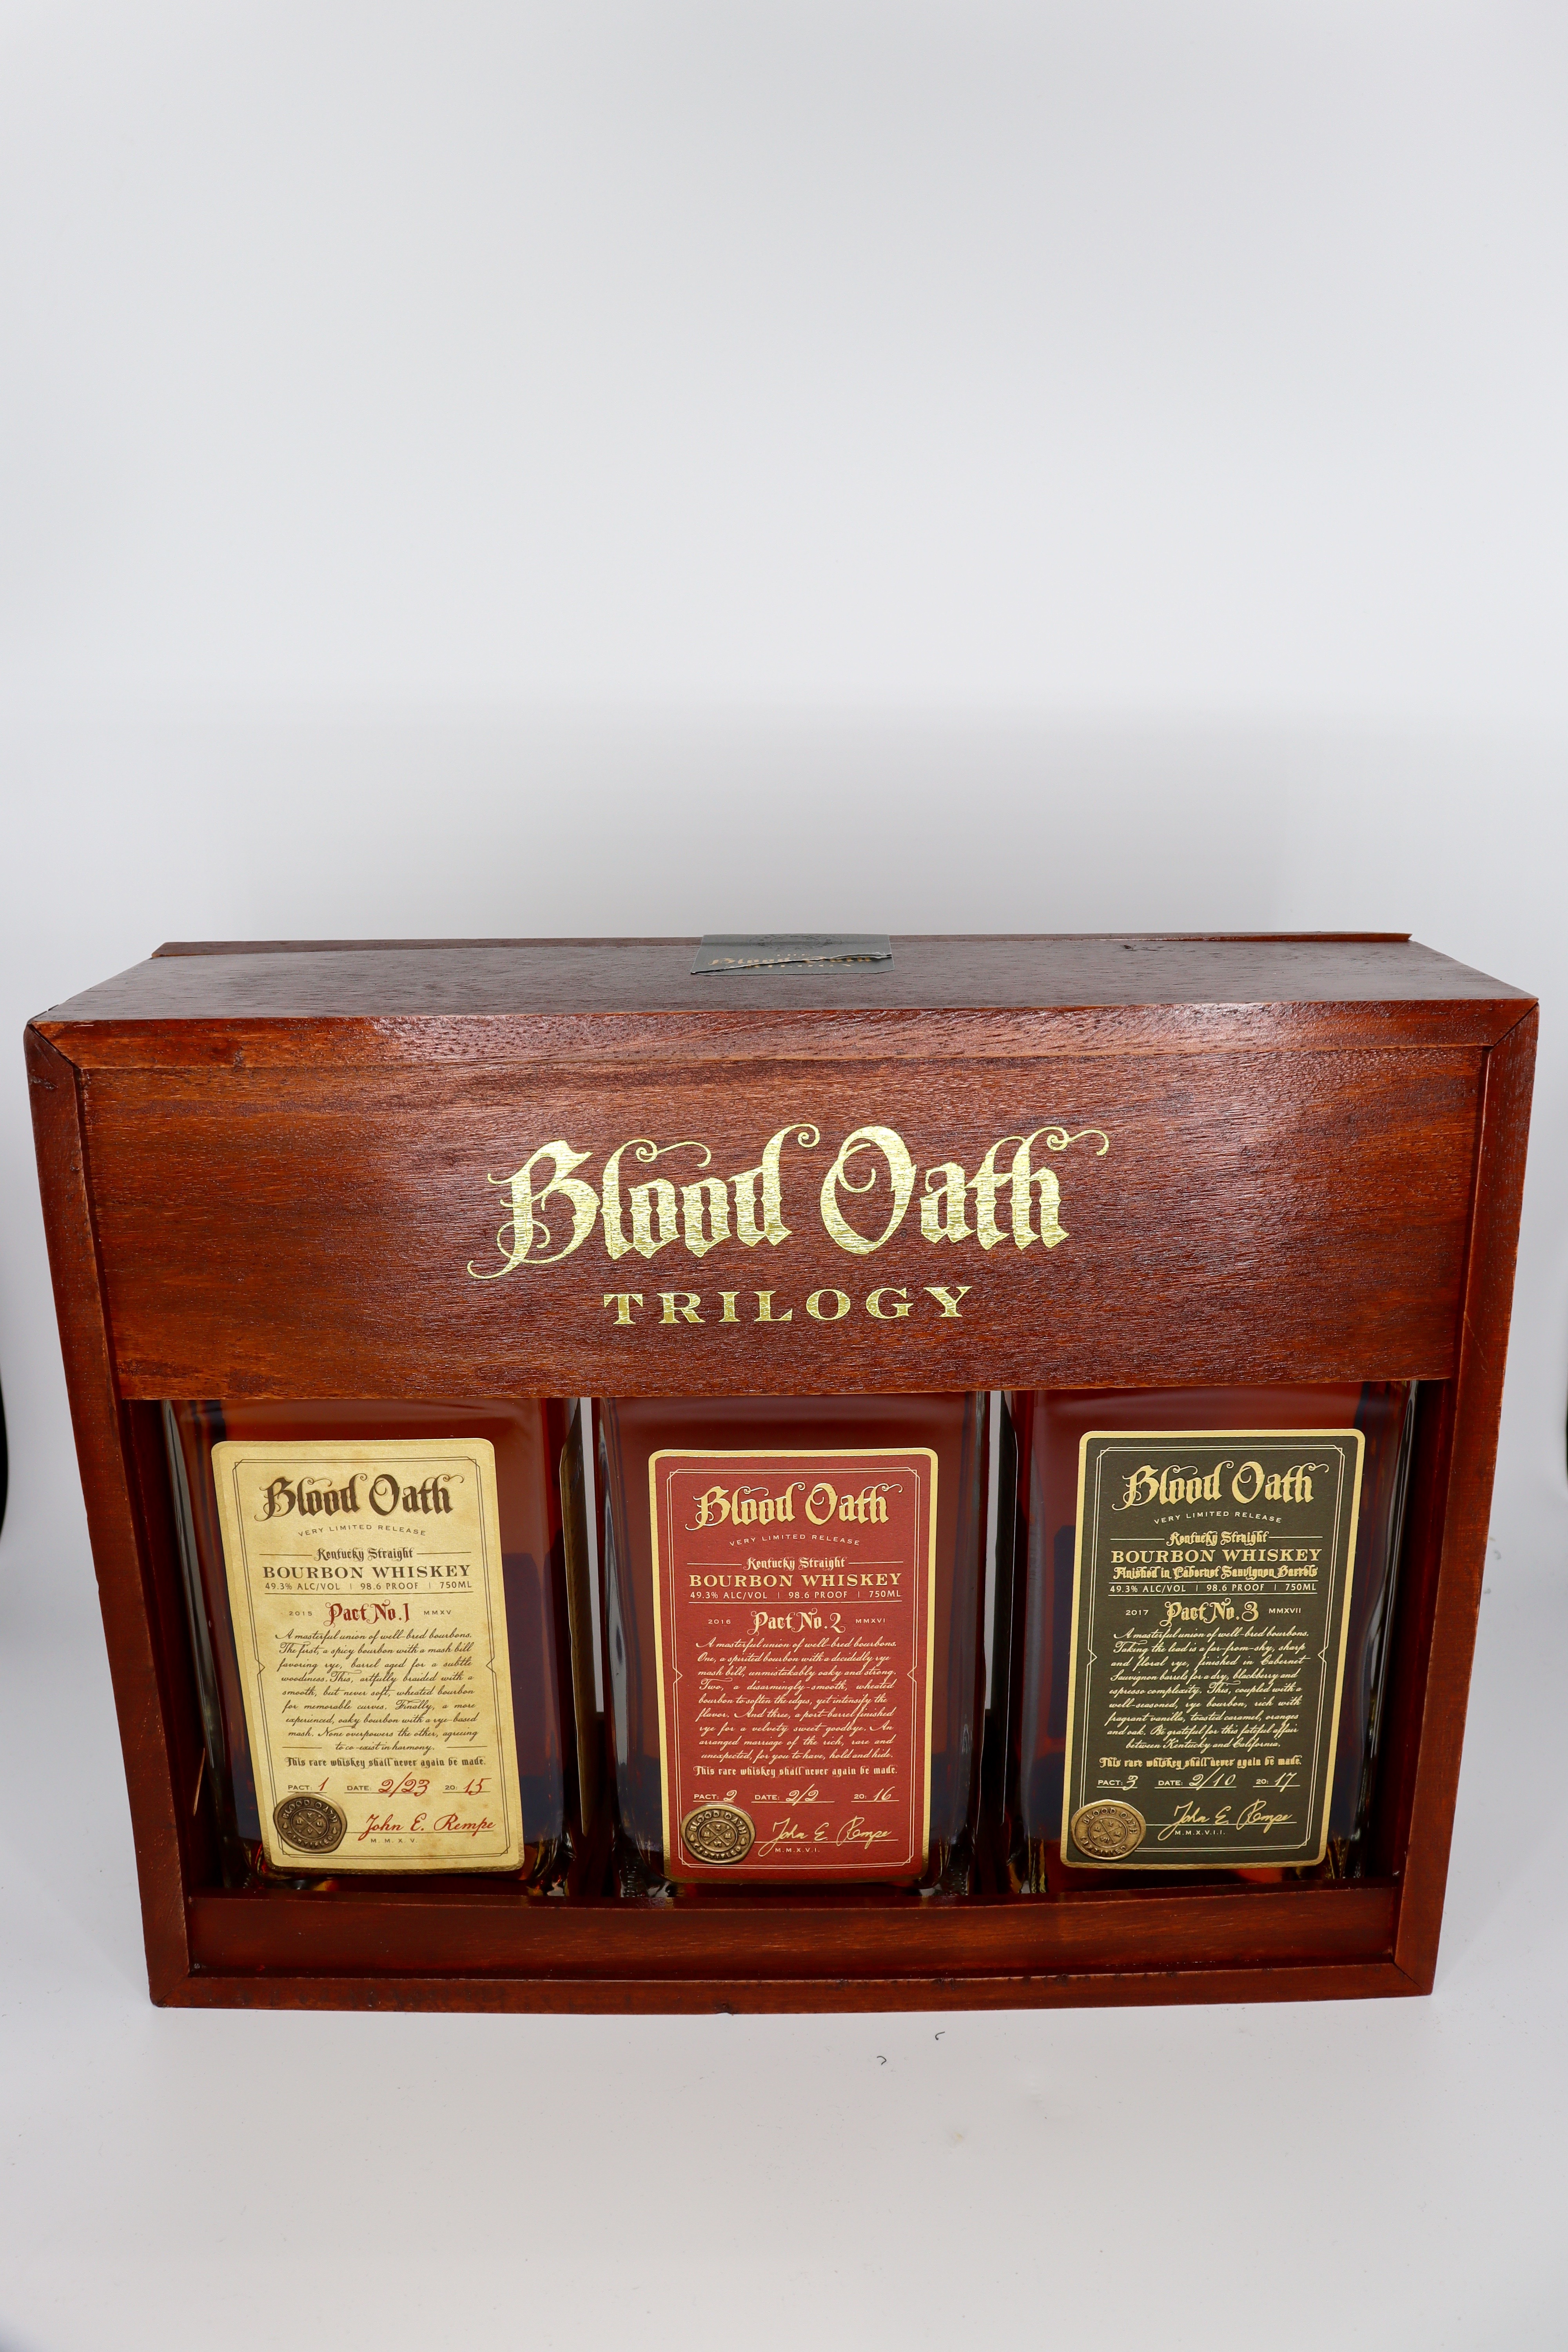 Blood Oath Trilogy Pact No 1-2-3 Bourbon in OWC